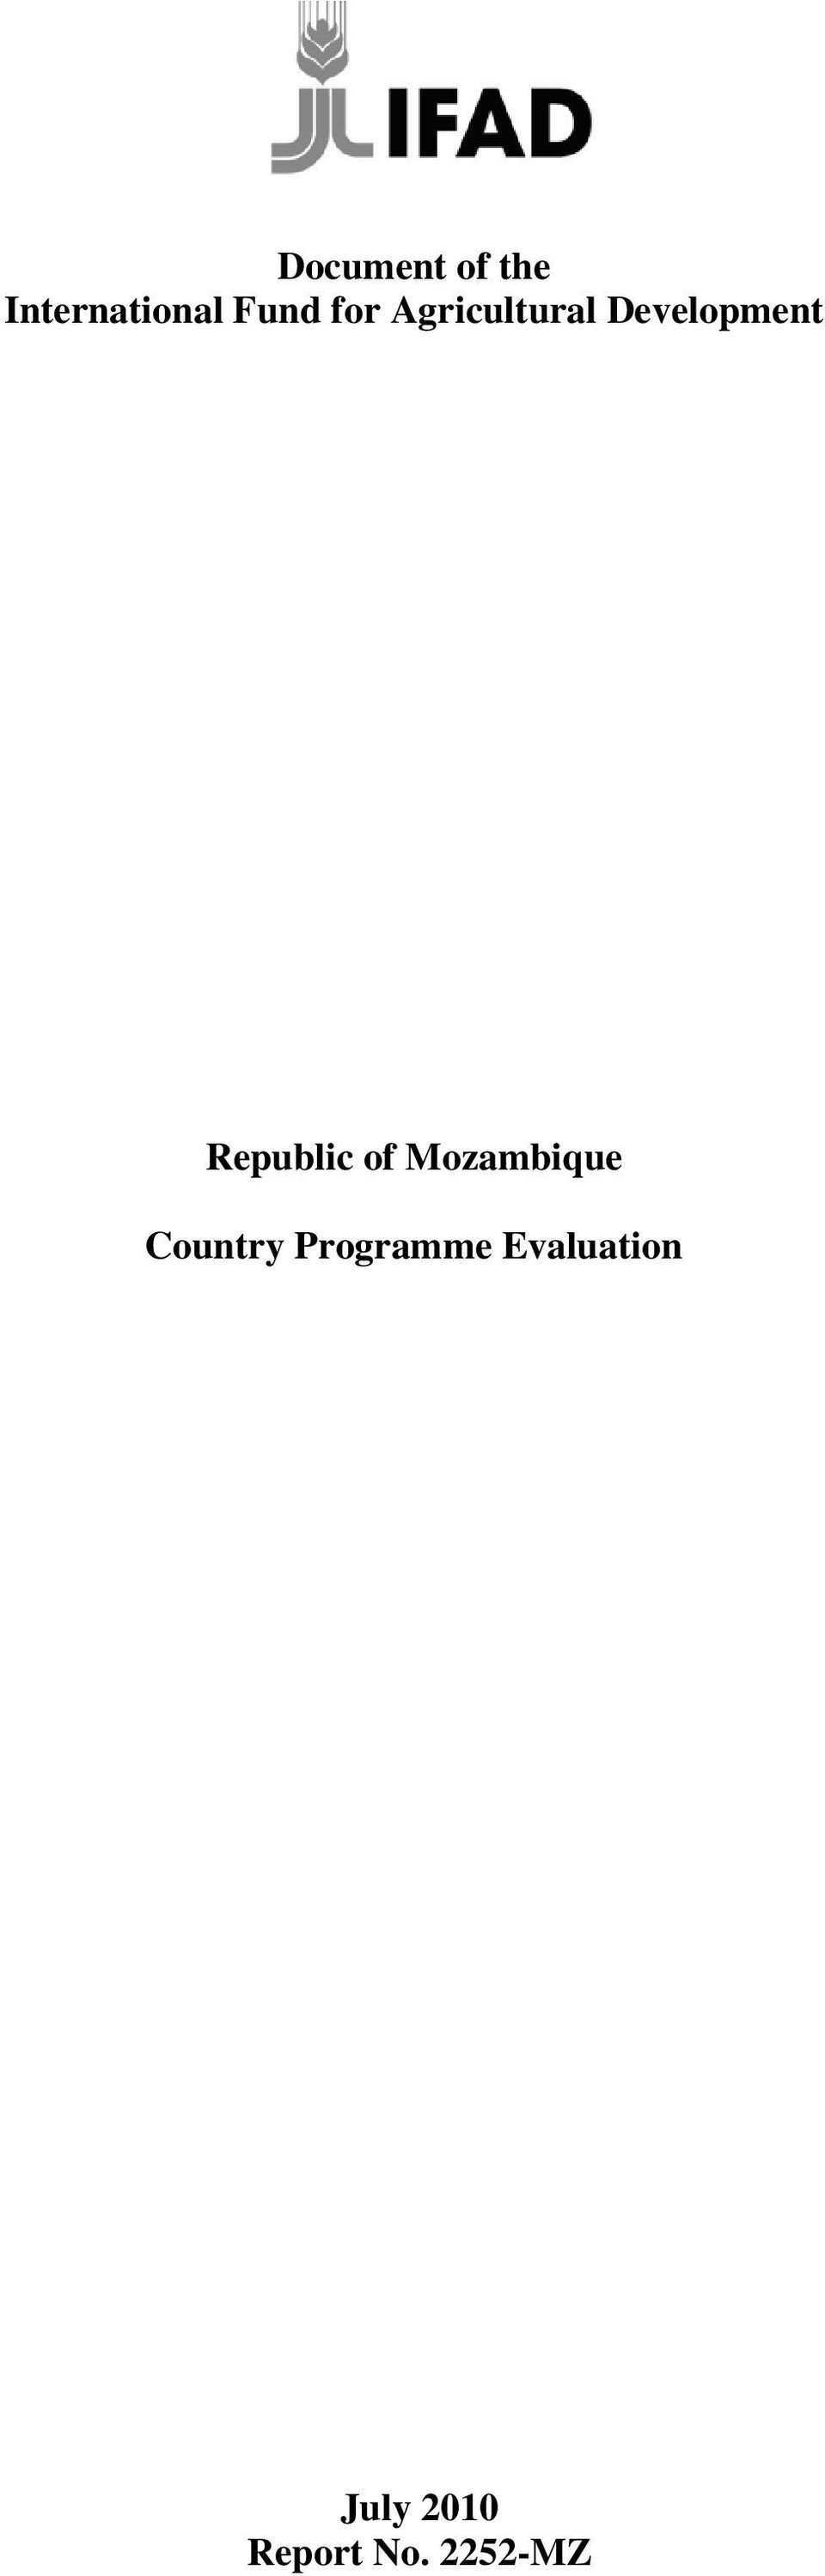 Republic of Mozambique Country